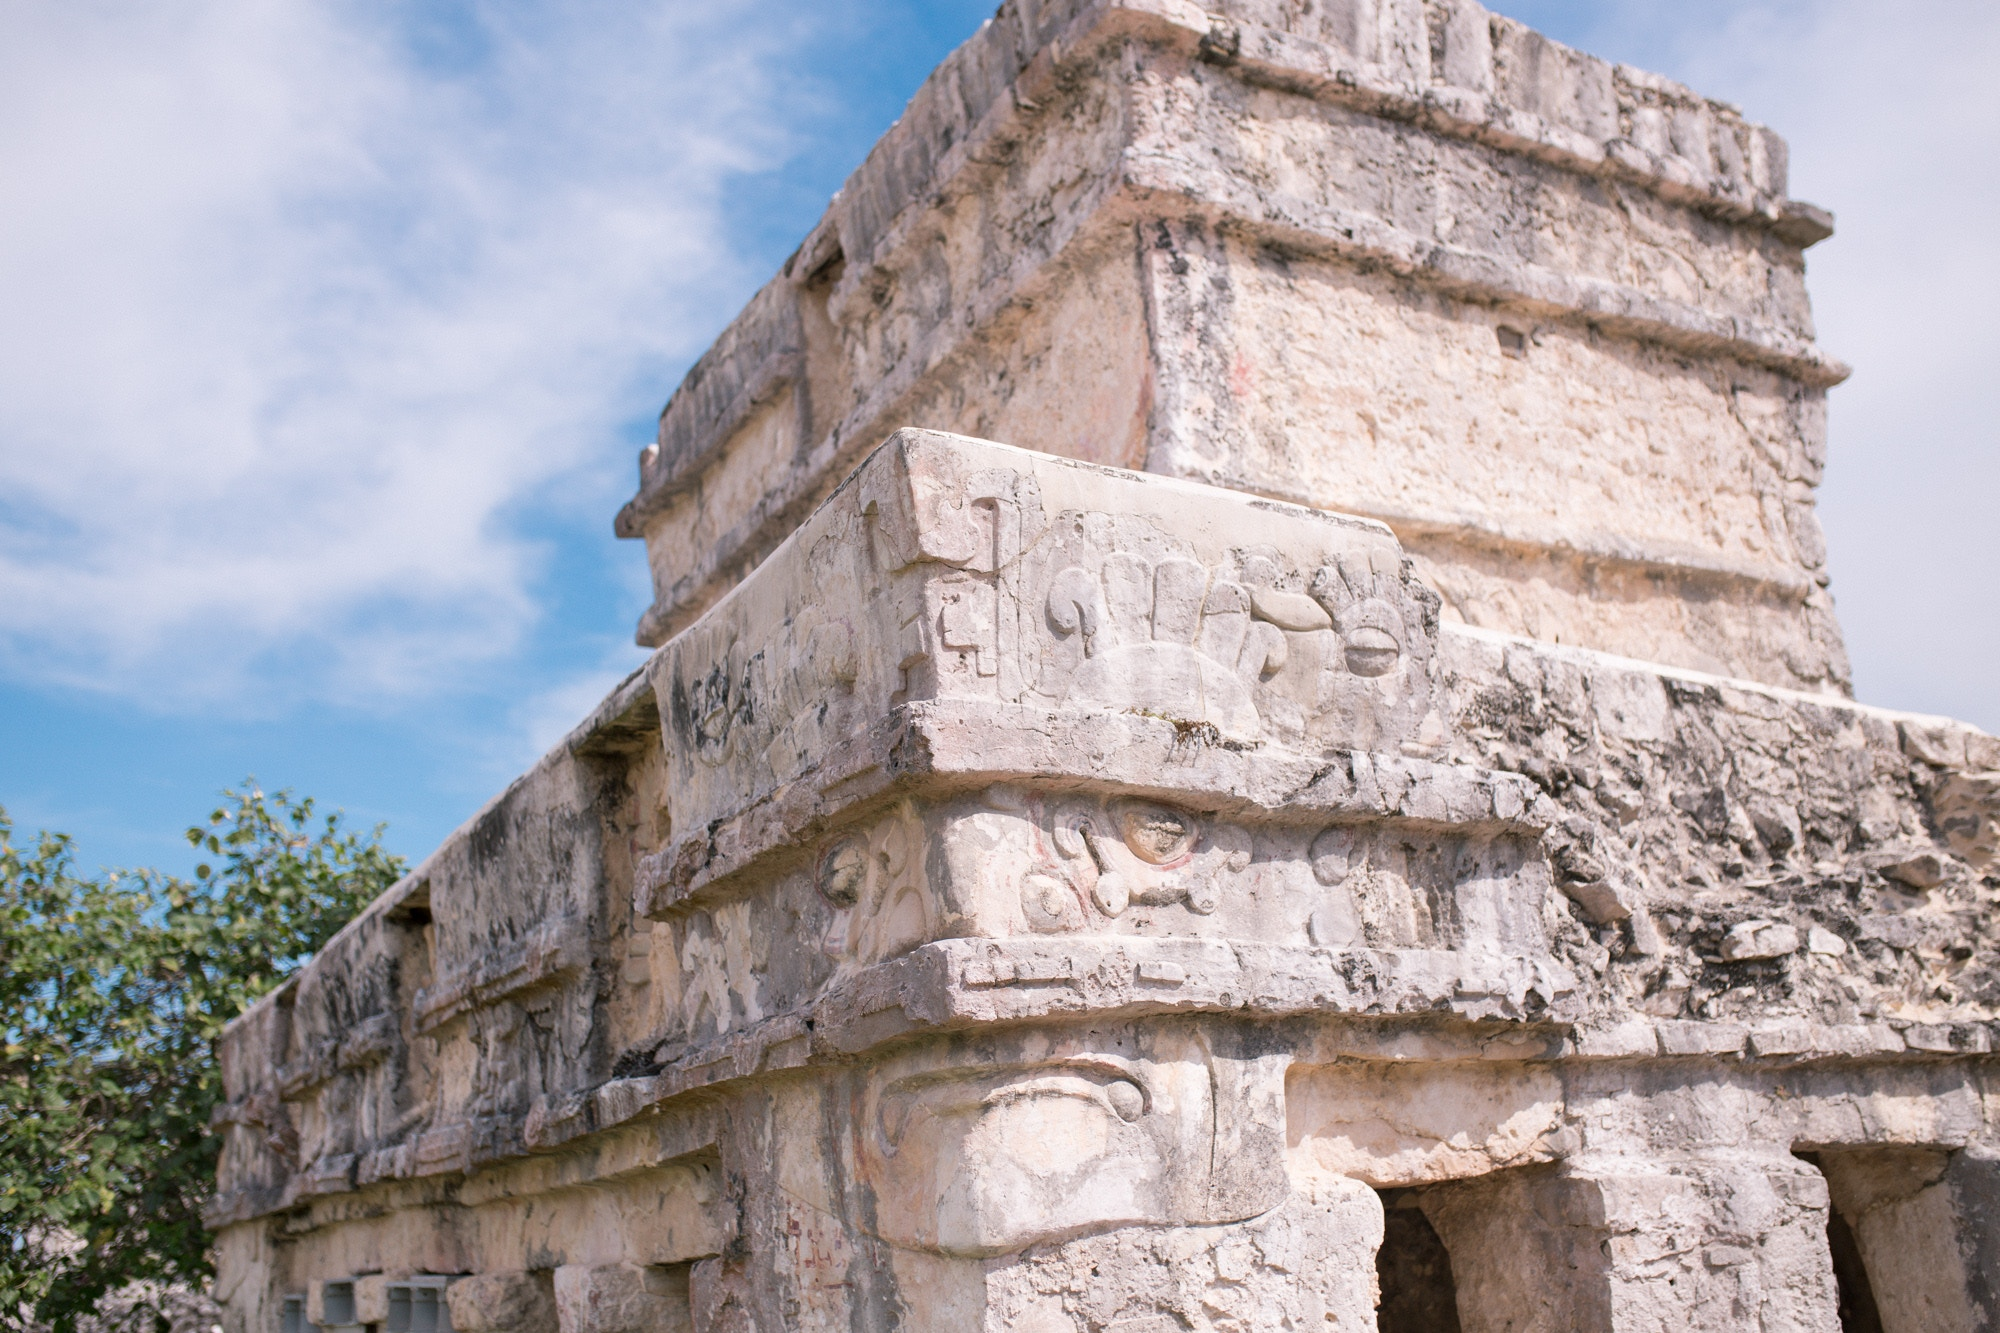 Details of a Mayan building in Tulum, Mexico